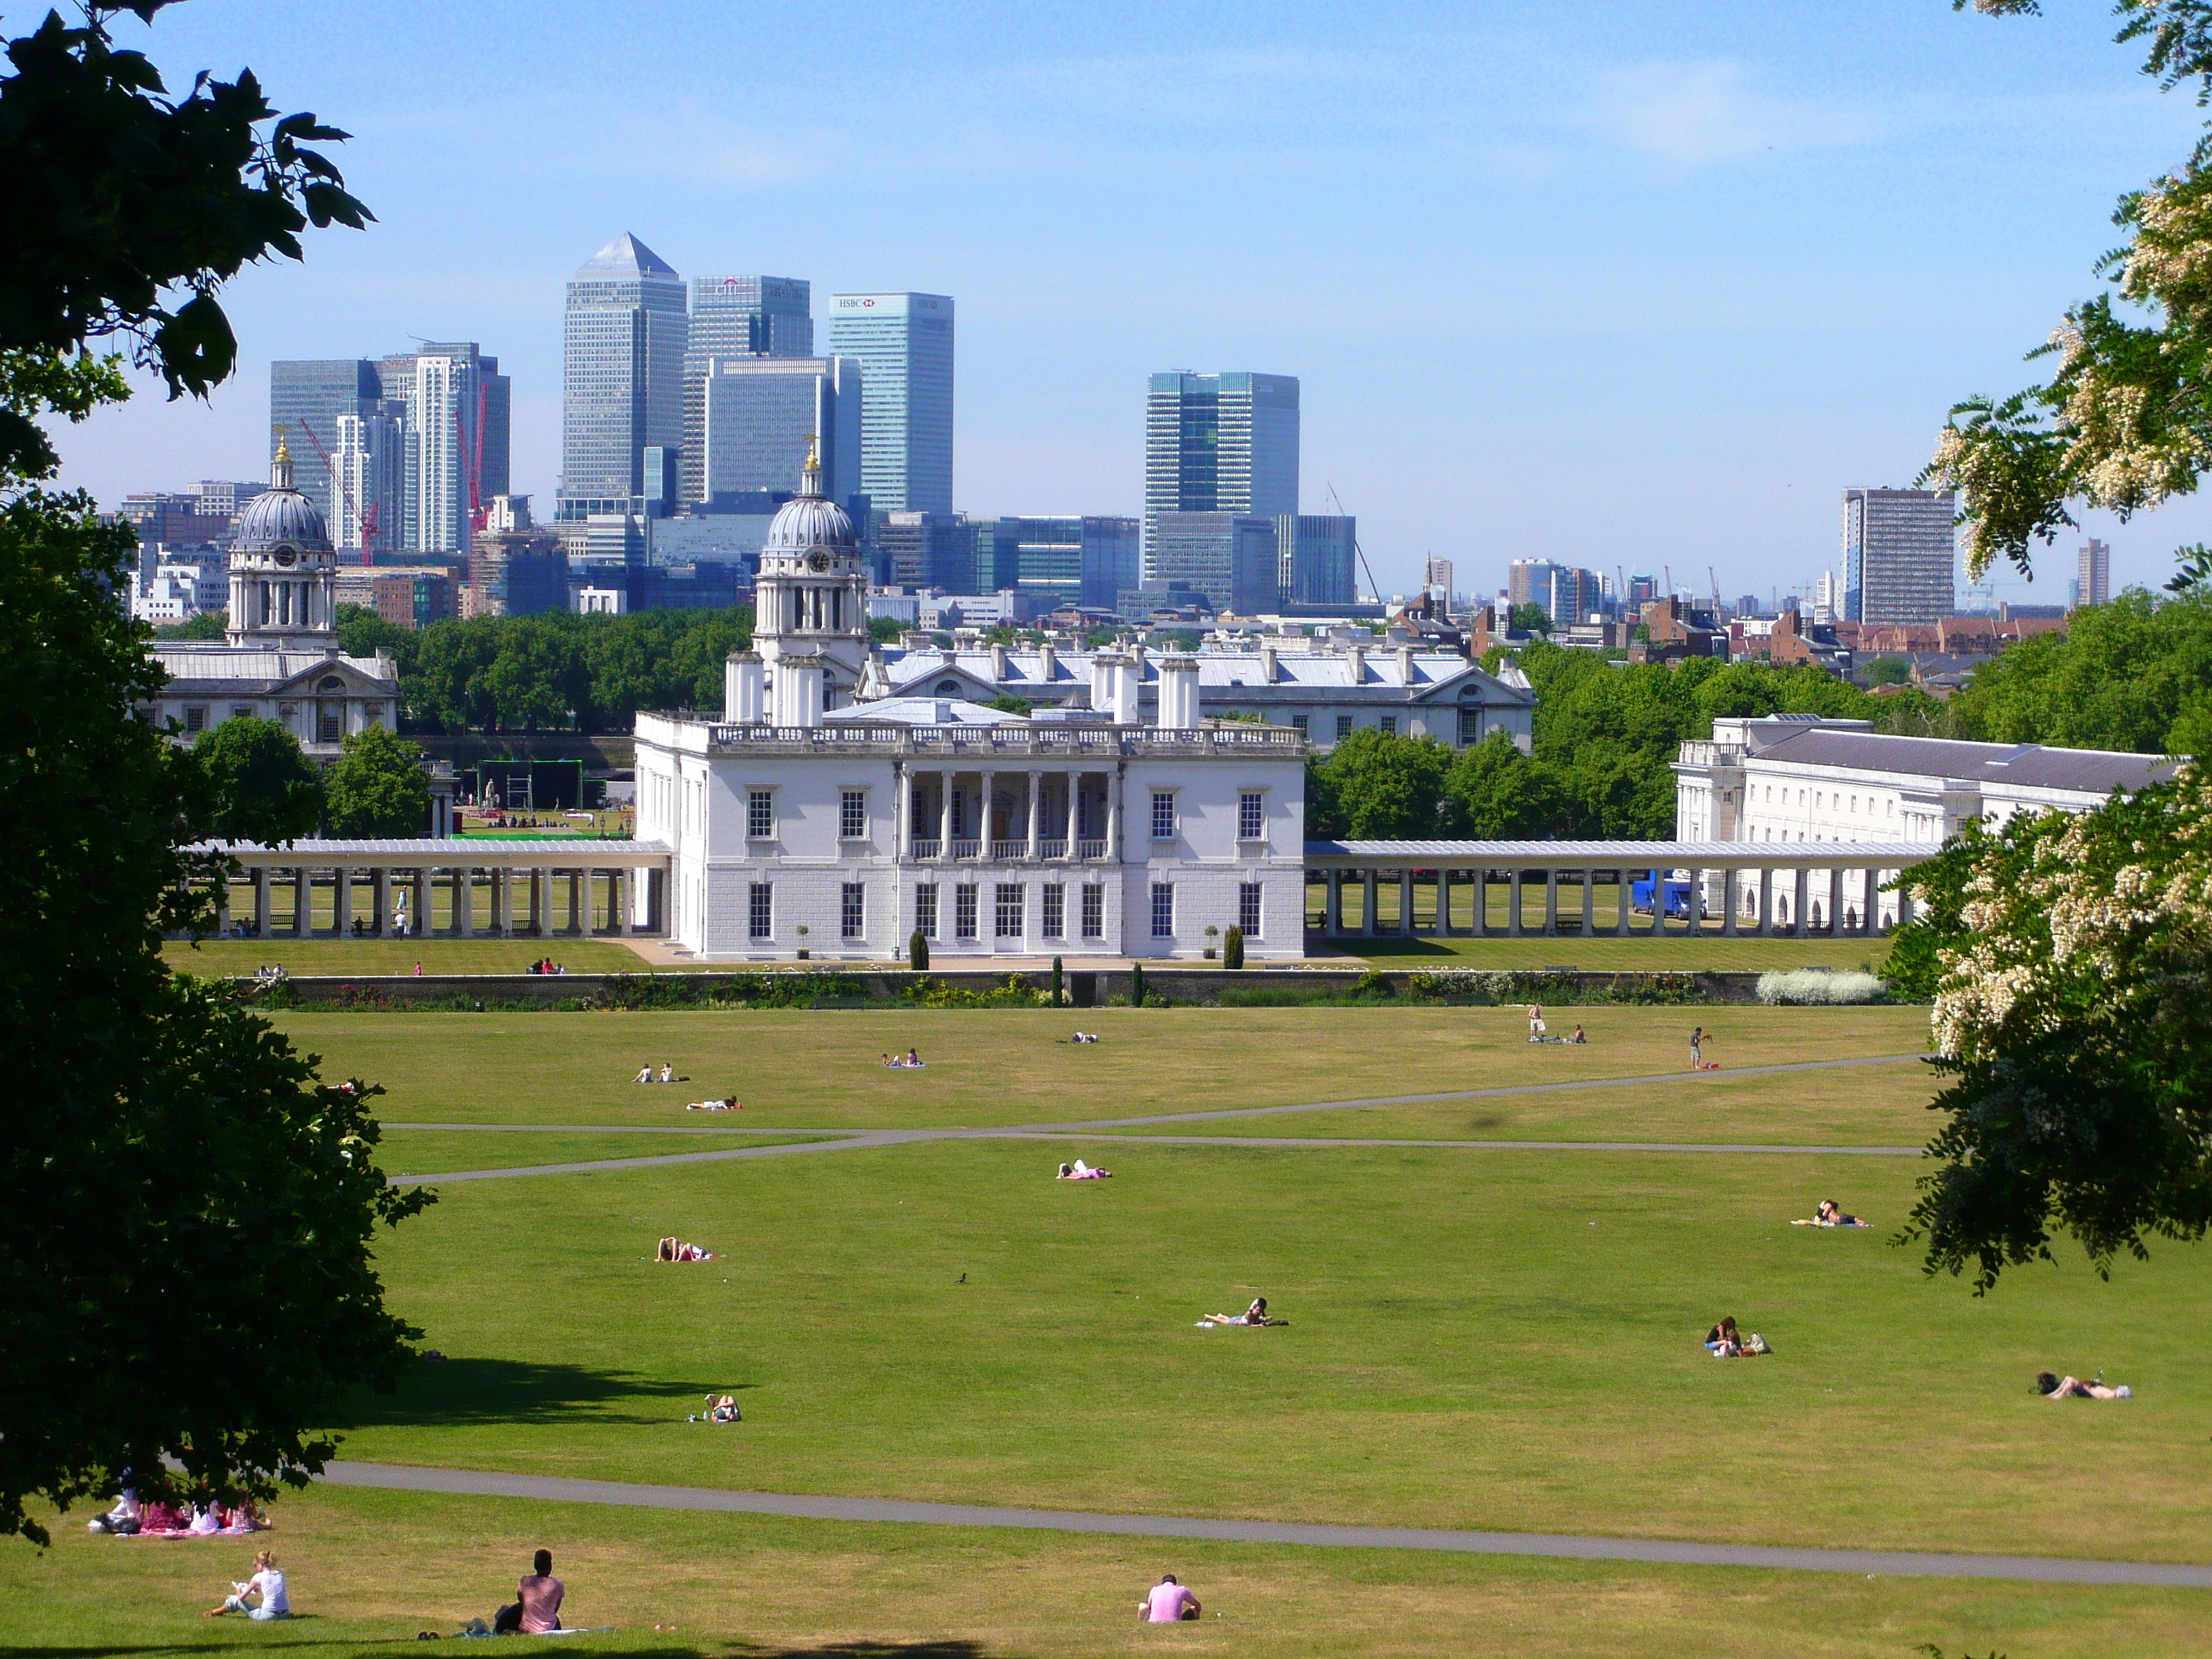 The Queens House at Greenwich